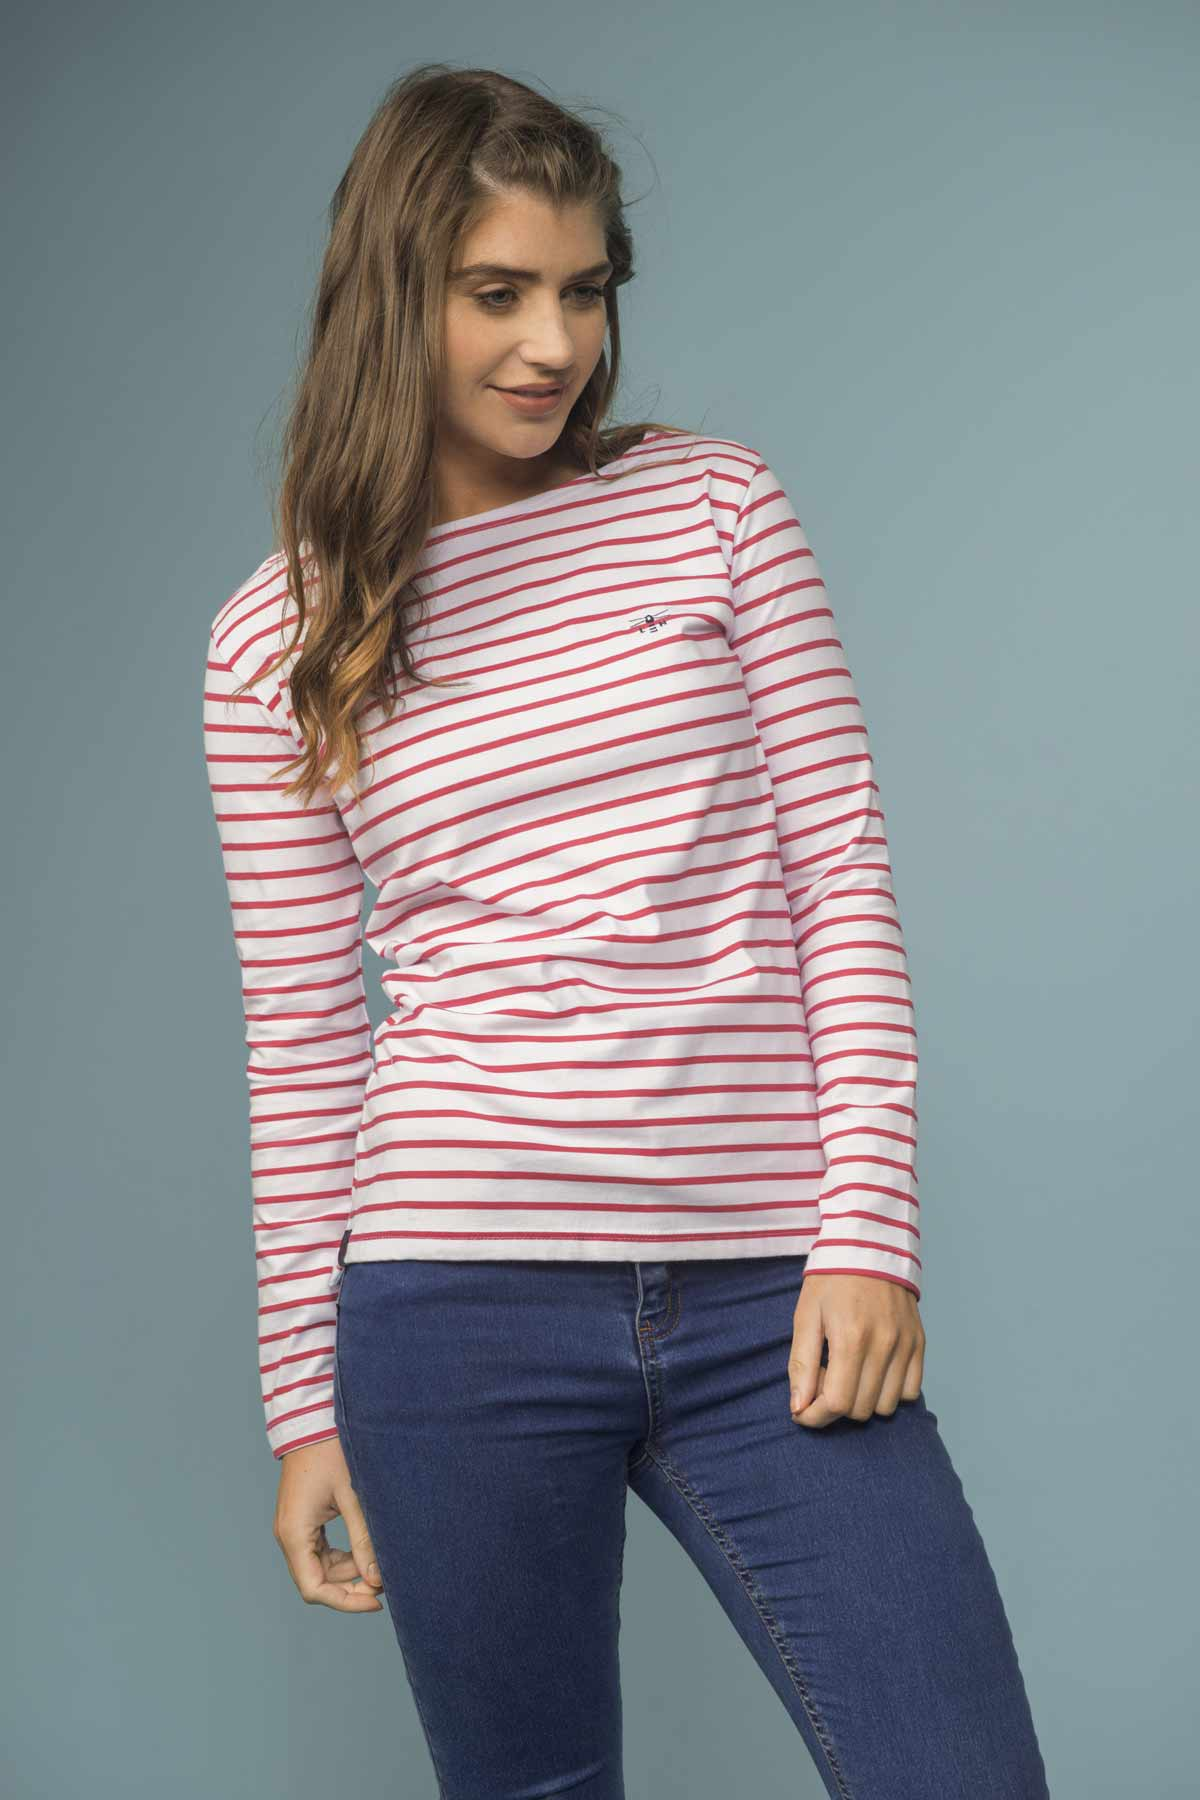 Causeway Women's Red Breton Striped Long Sleeve Top